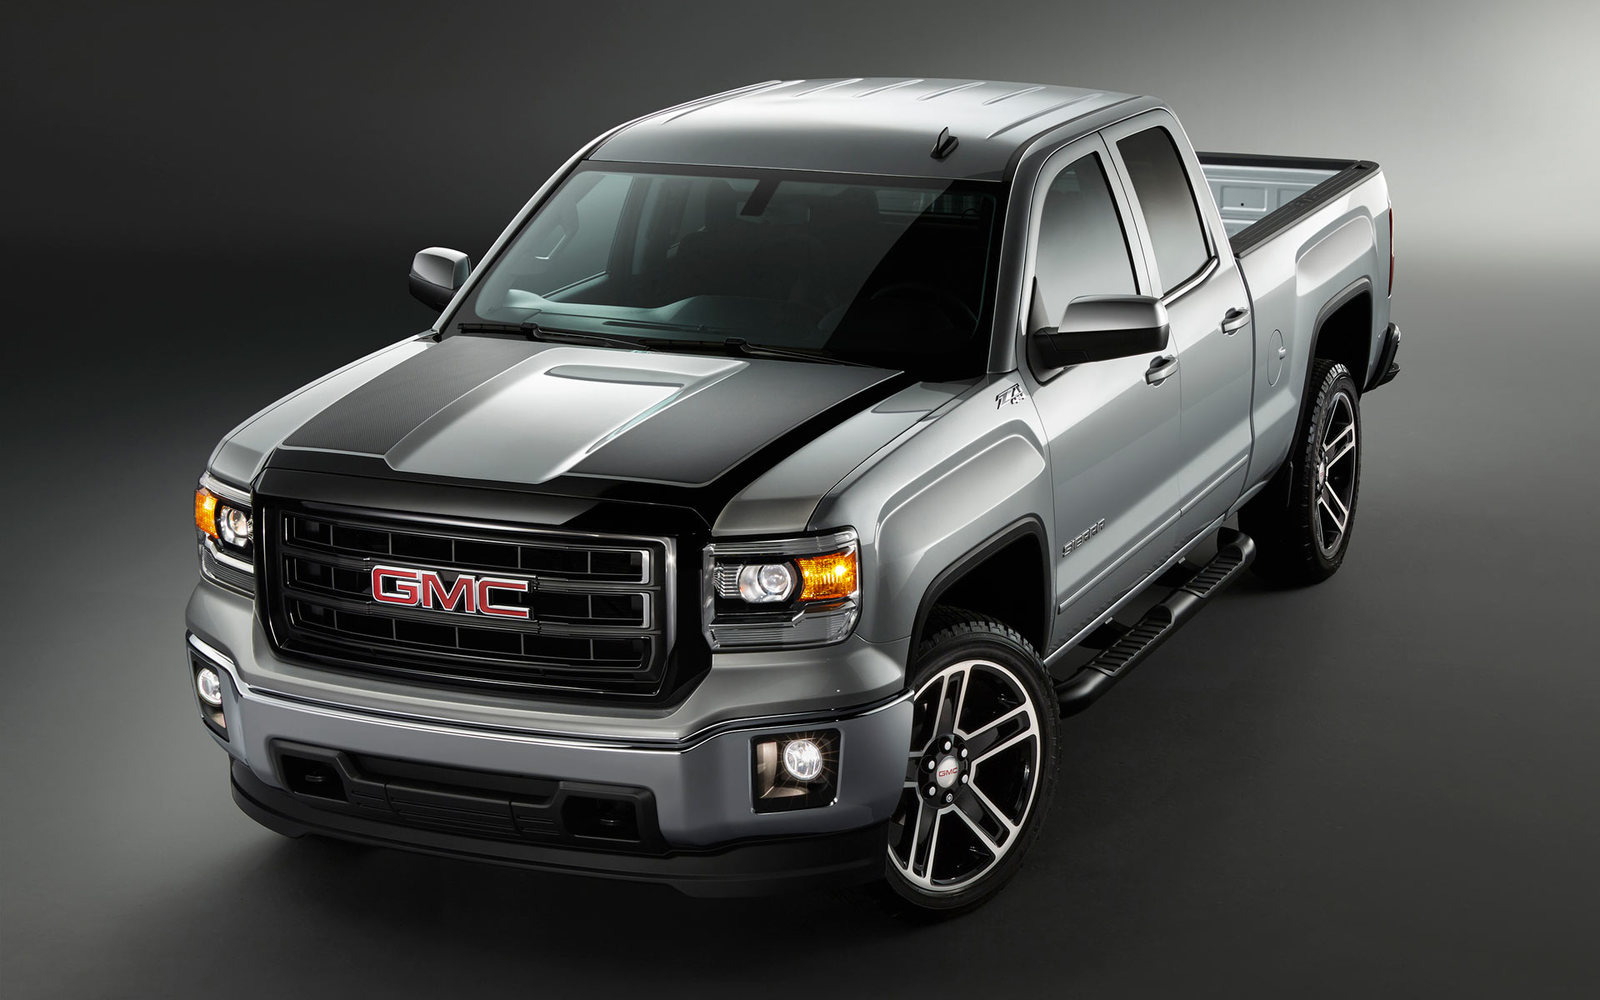 GMC Sierra Carbon Edition